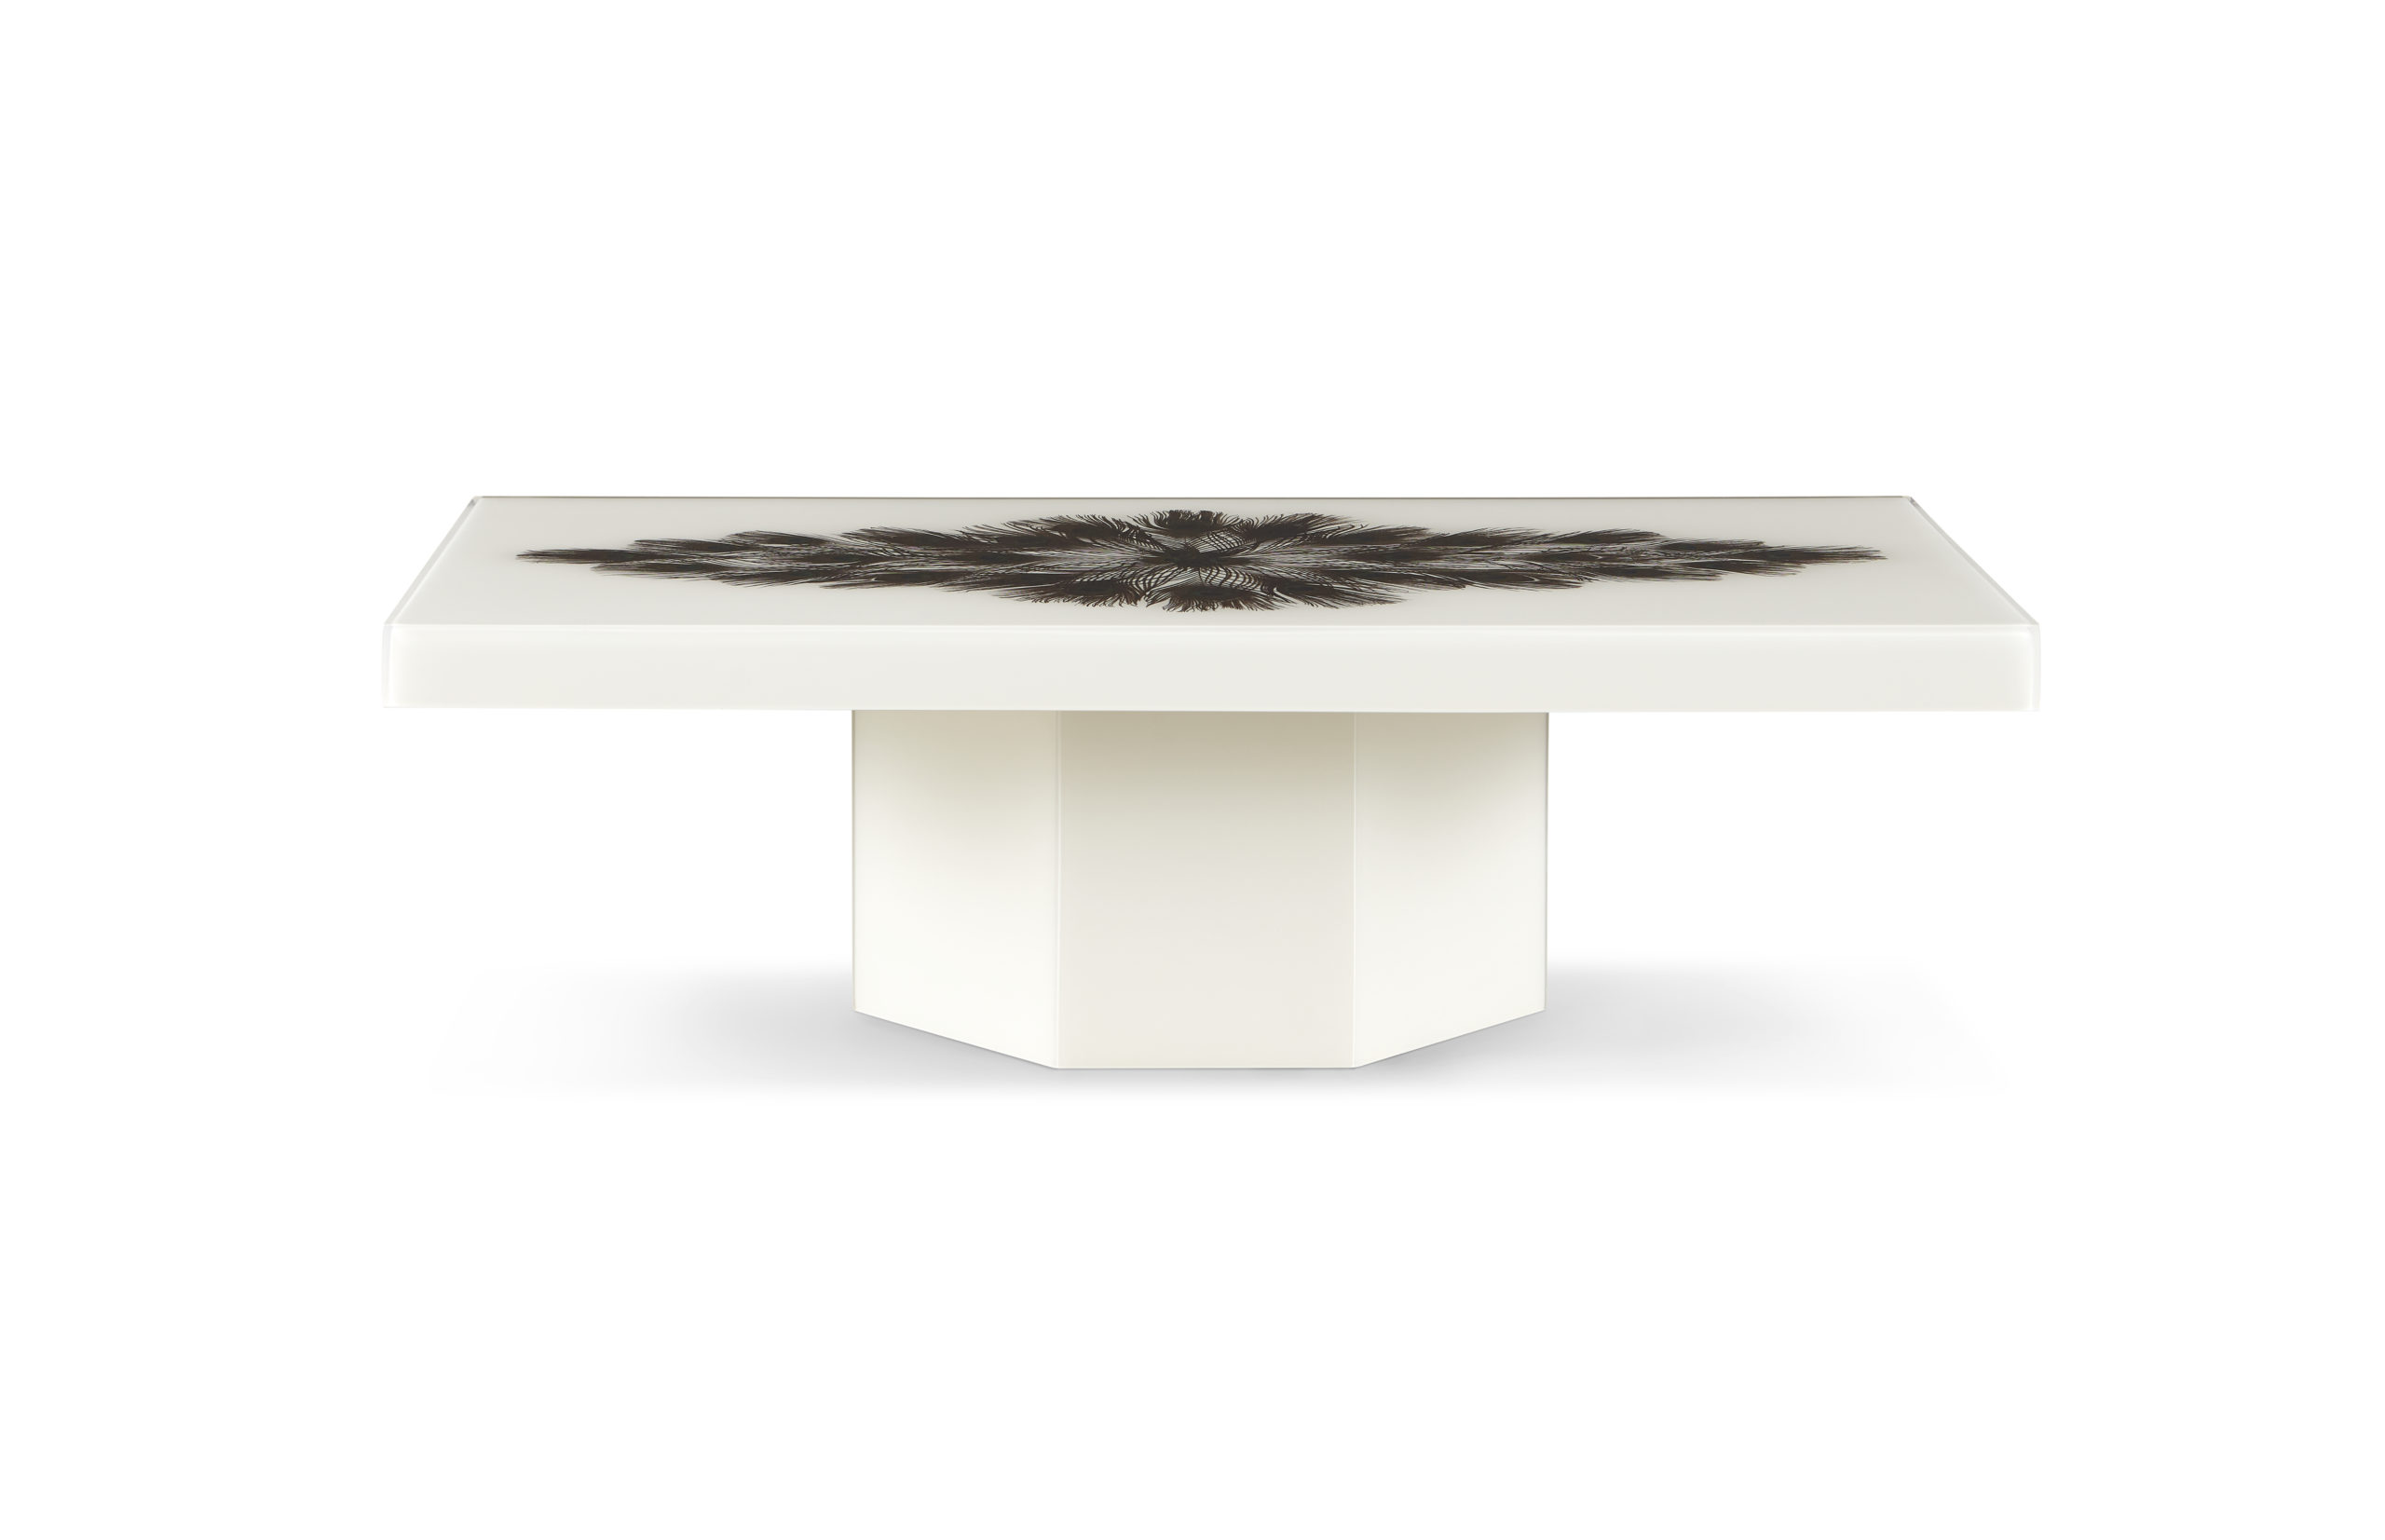 Baker_products_WNWN_peacock_rectangle_cocktail_table_BAA3256_FRONT_resize-scaled-2